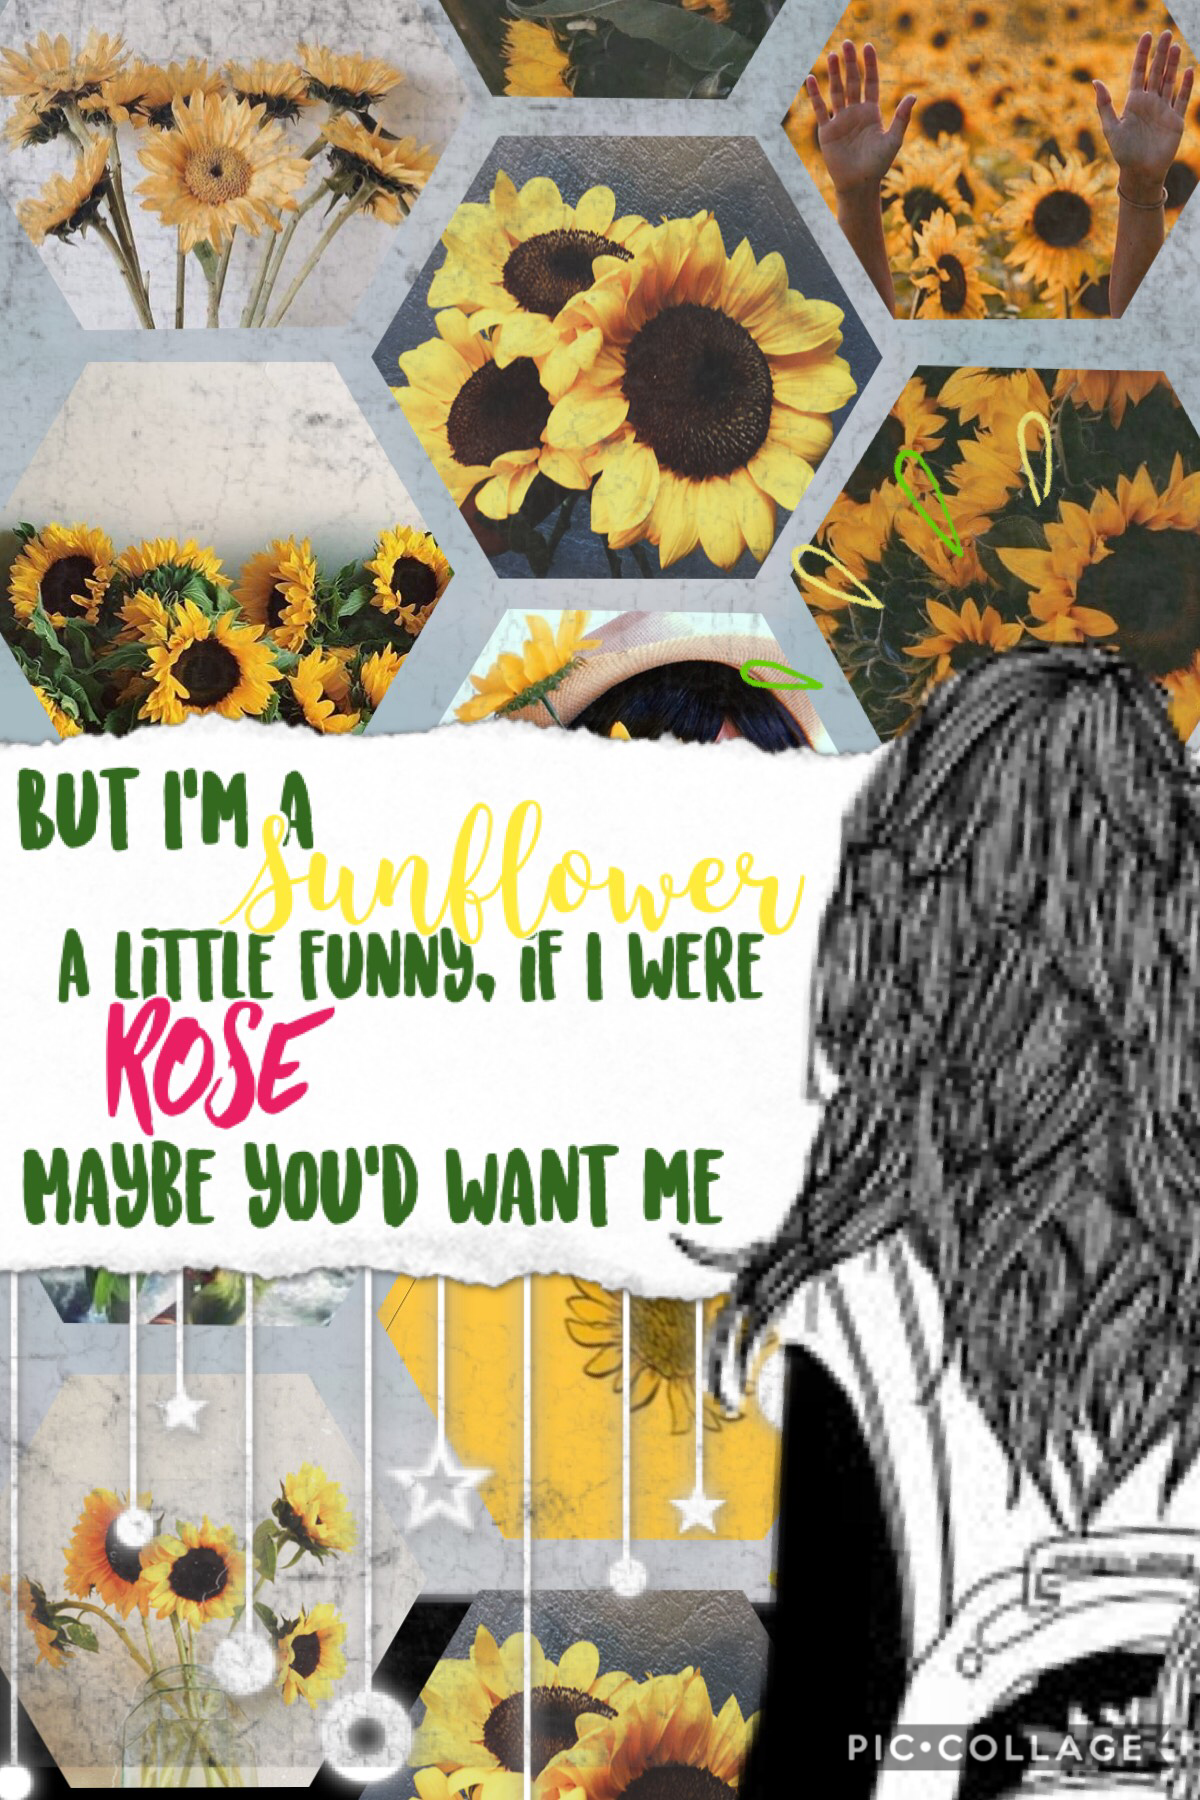 🌻My new favorite song 🌻  Rate out of 10. I'm really proud of this collage what do you think 🌻🌻🌻🌻🌻